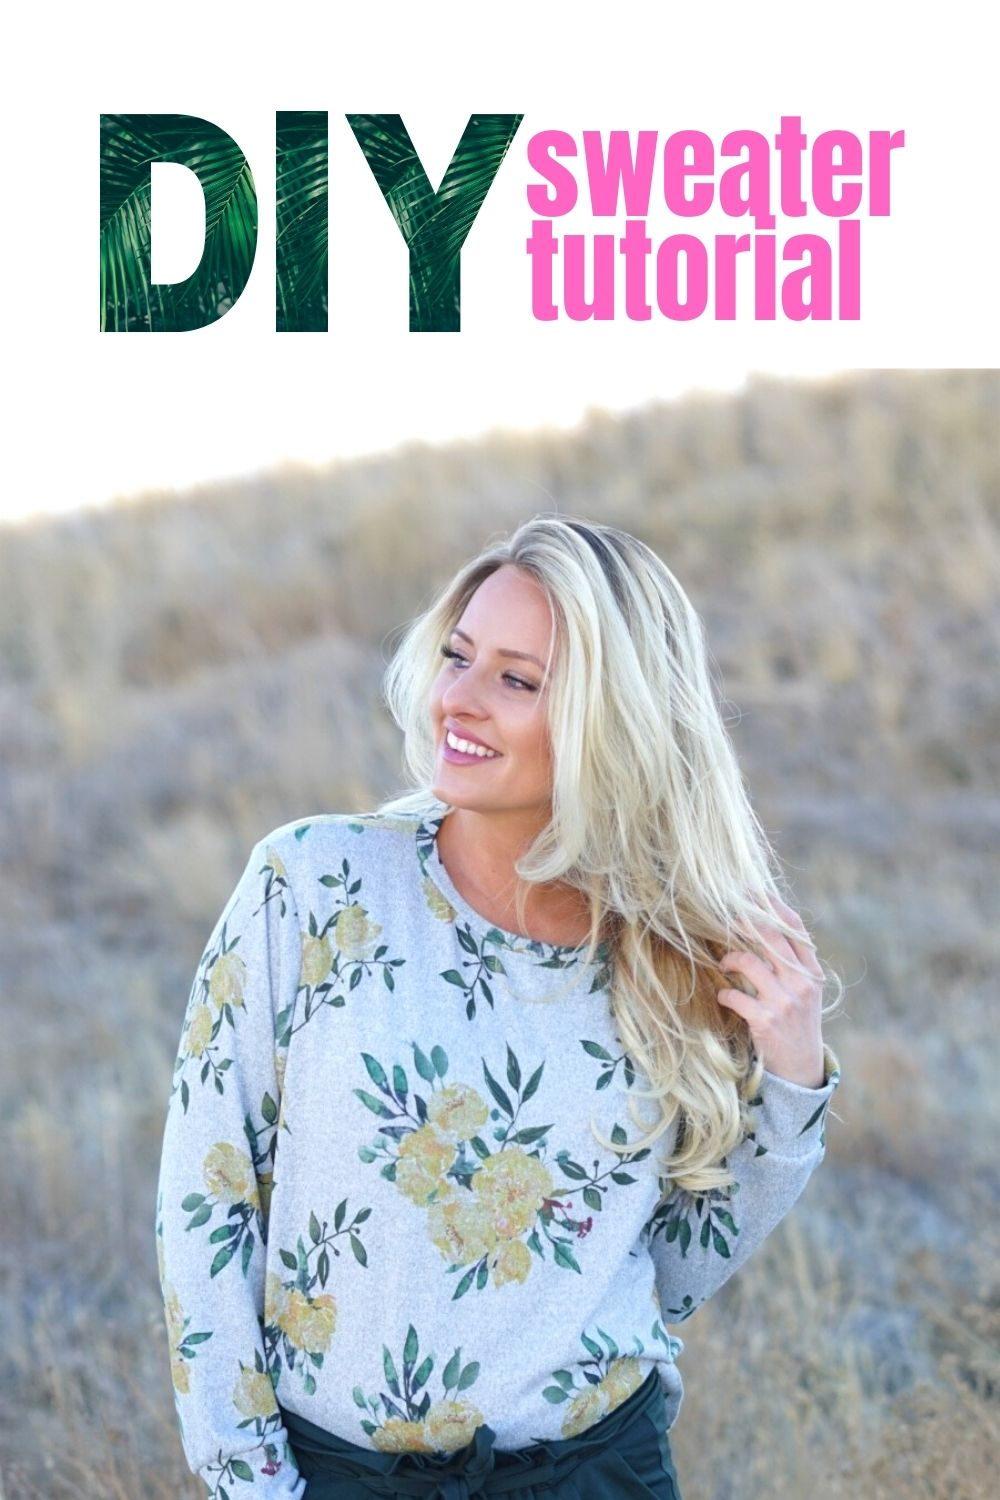 """Blonde woman wearing floral printed sweater is shown next to the text """"diy sweater tutorial"""""""